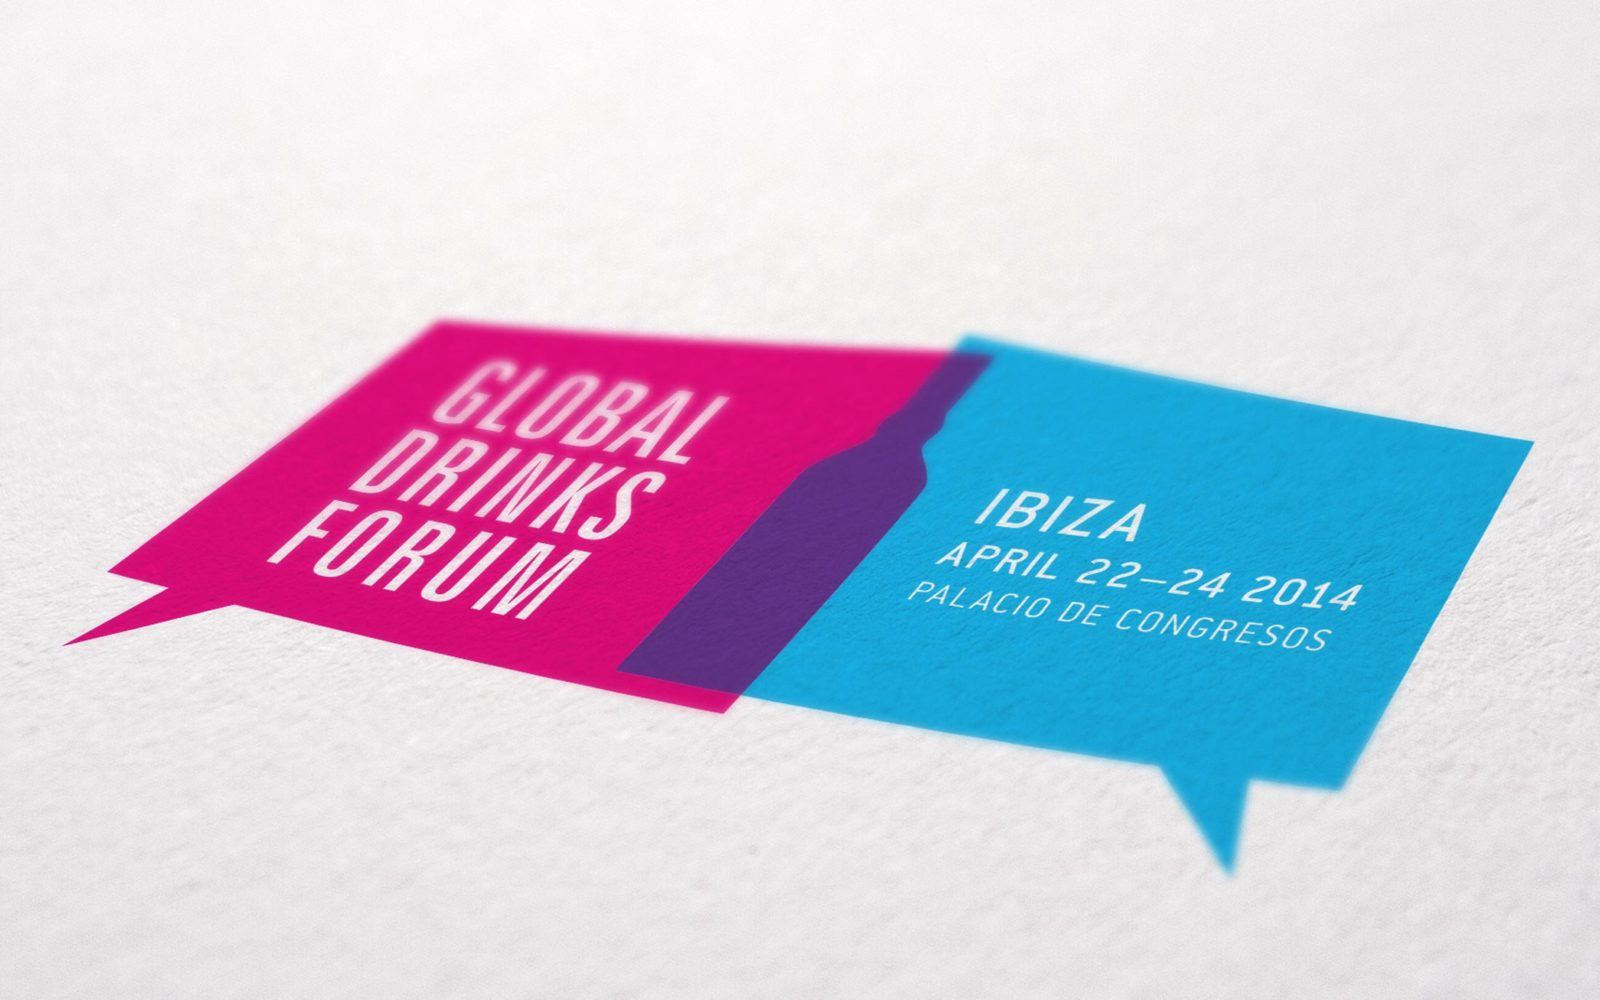 Logodesign, Corporate Design, Global Drinks Forum